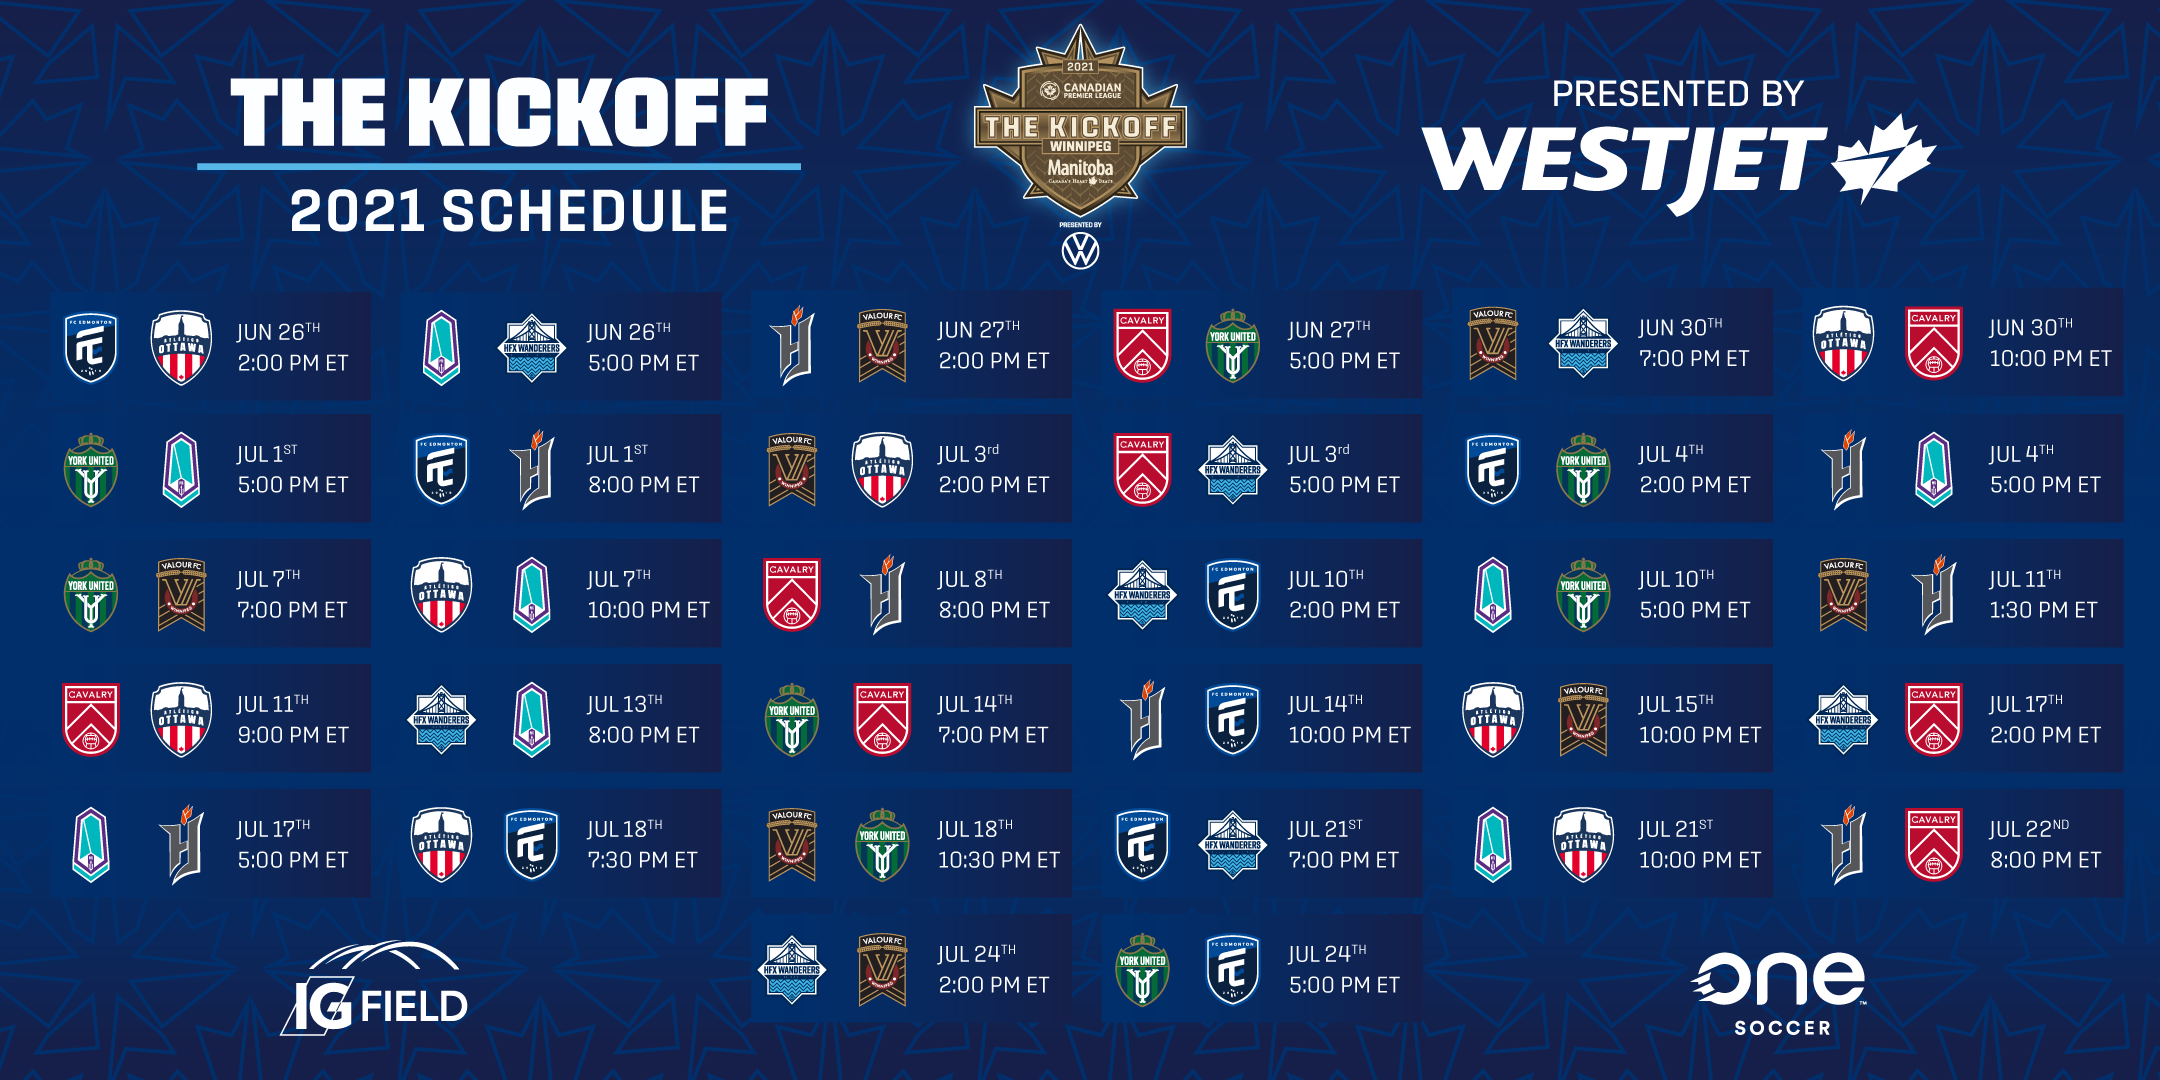 The Kickoff 2021 Schedule presented by WestJet.